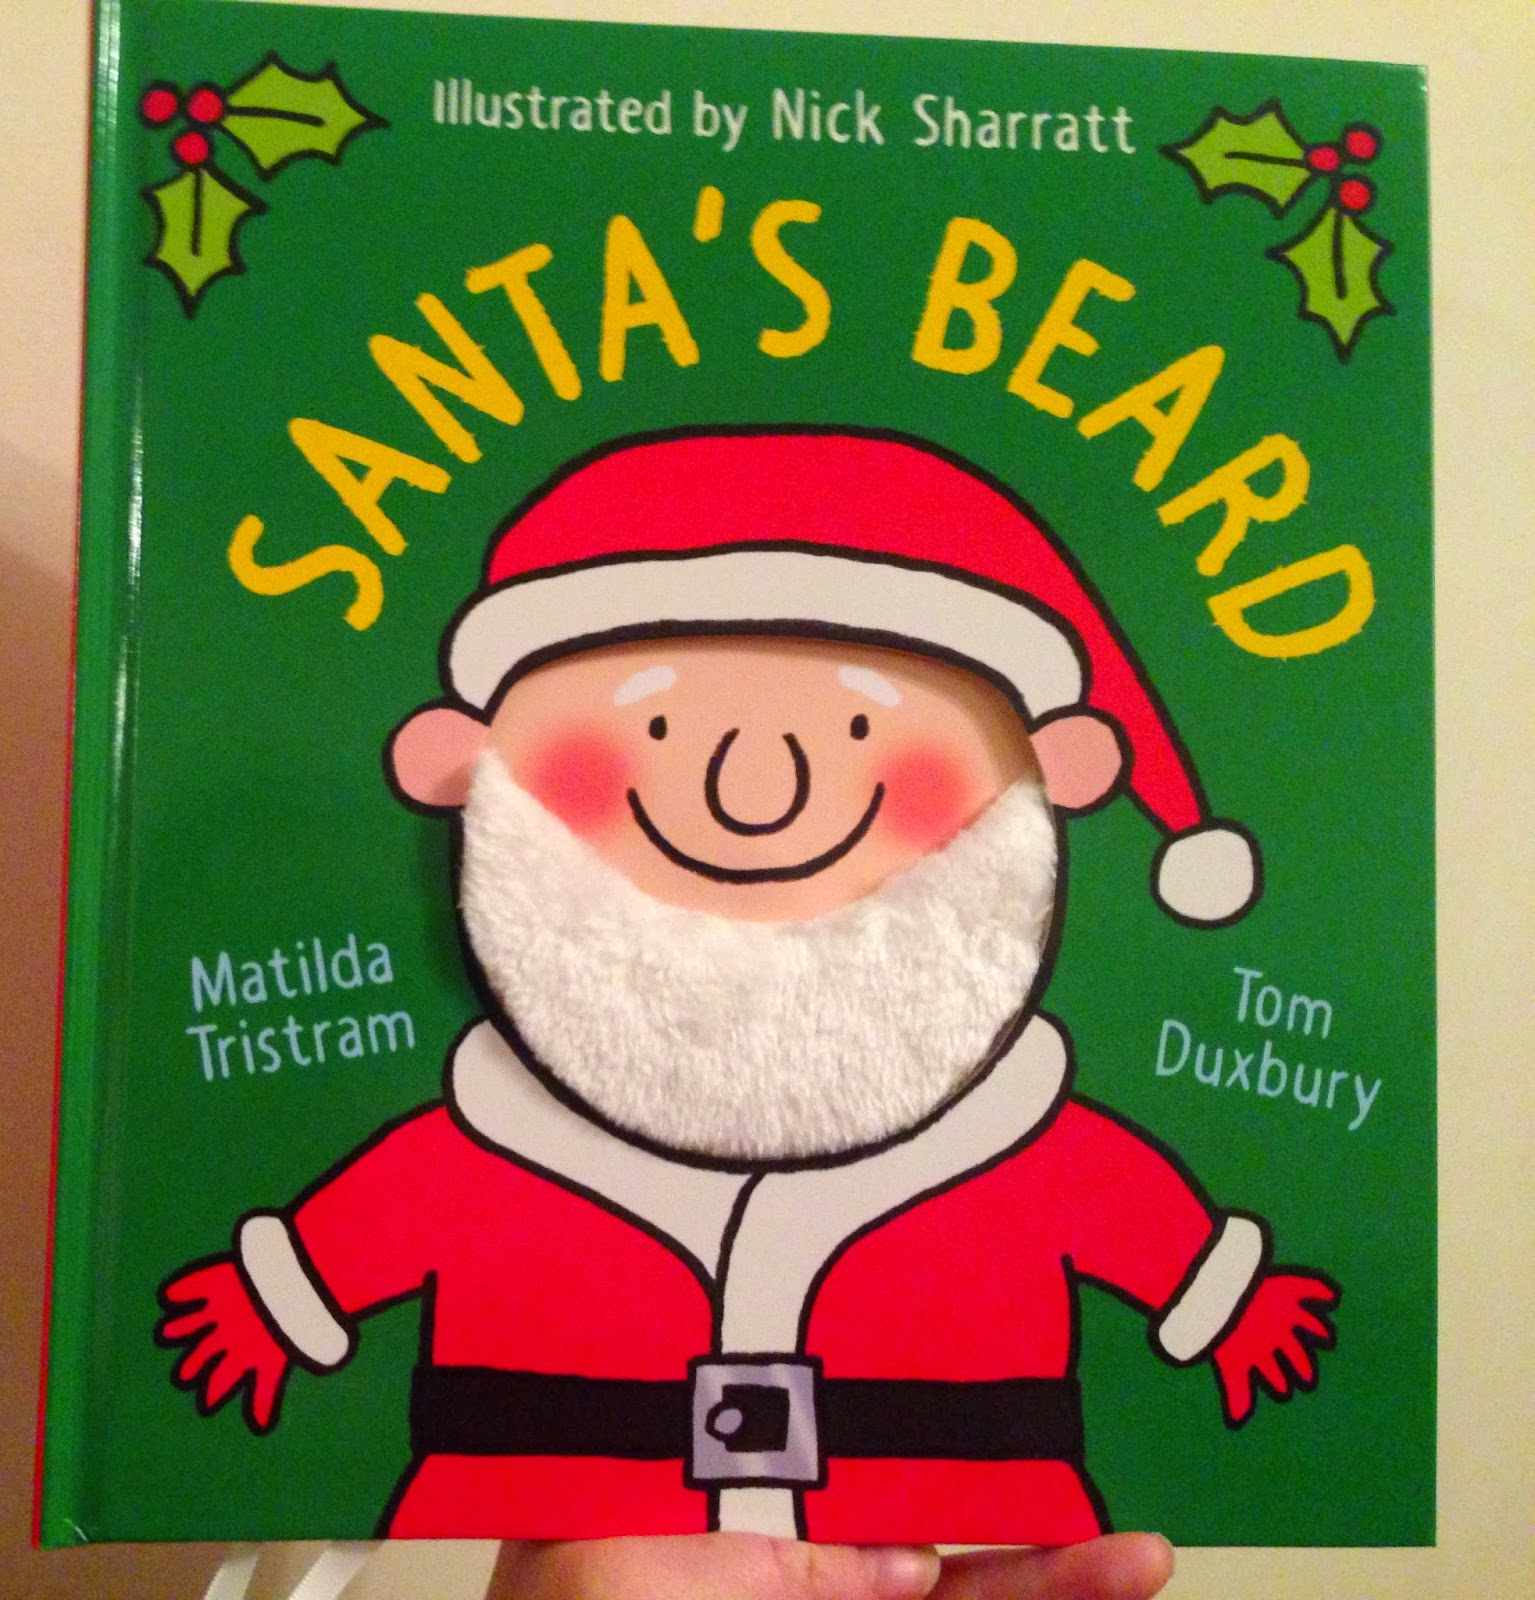 Our Christmas Book Advent tree | Ideas for the Best Children's Books to Buy this Christmas - Santas beard